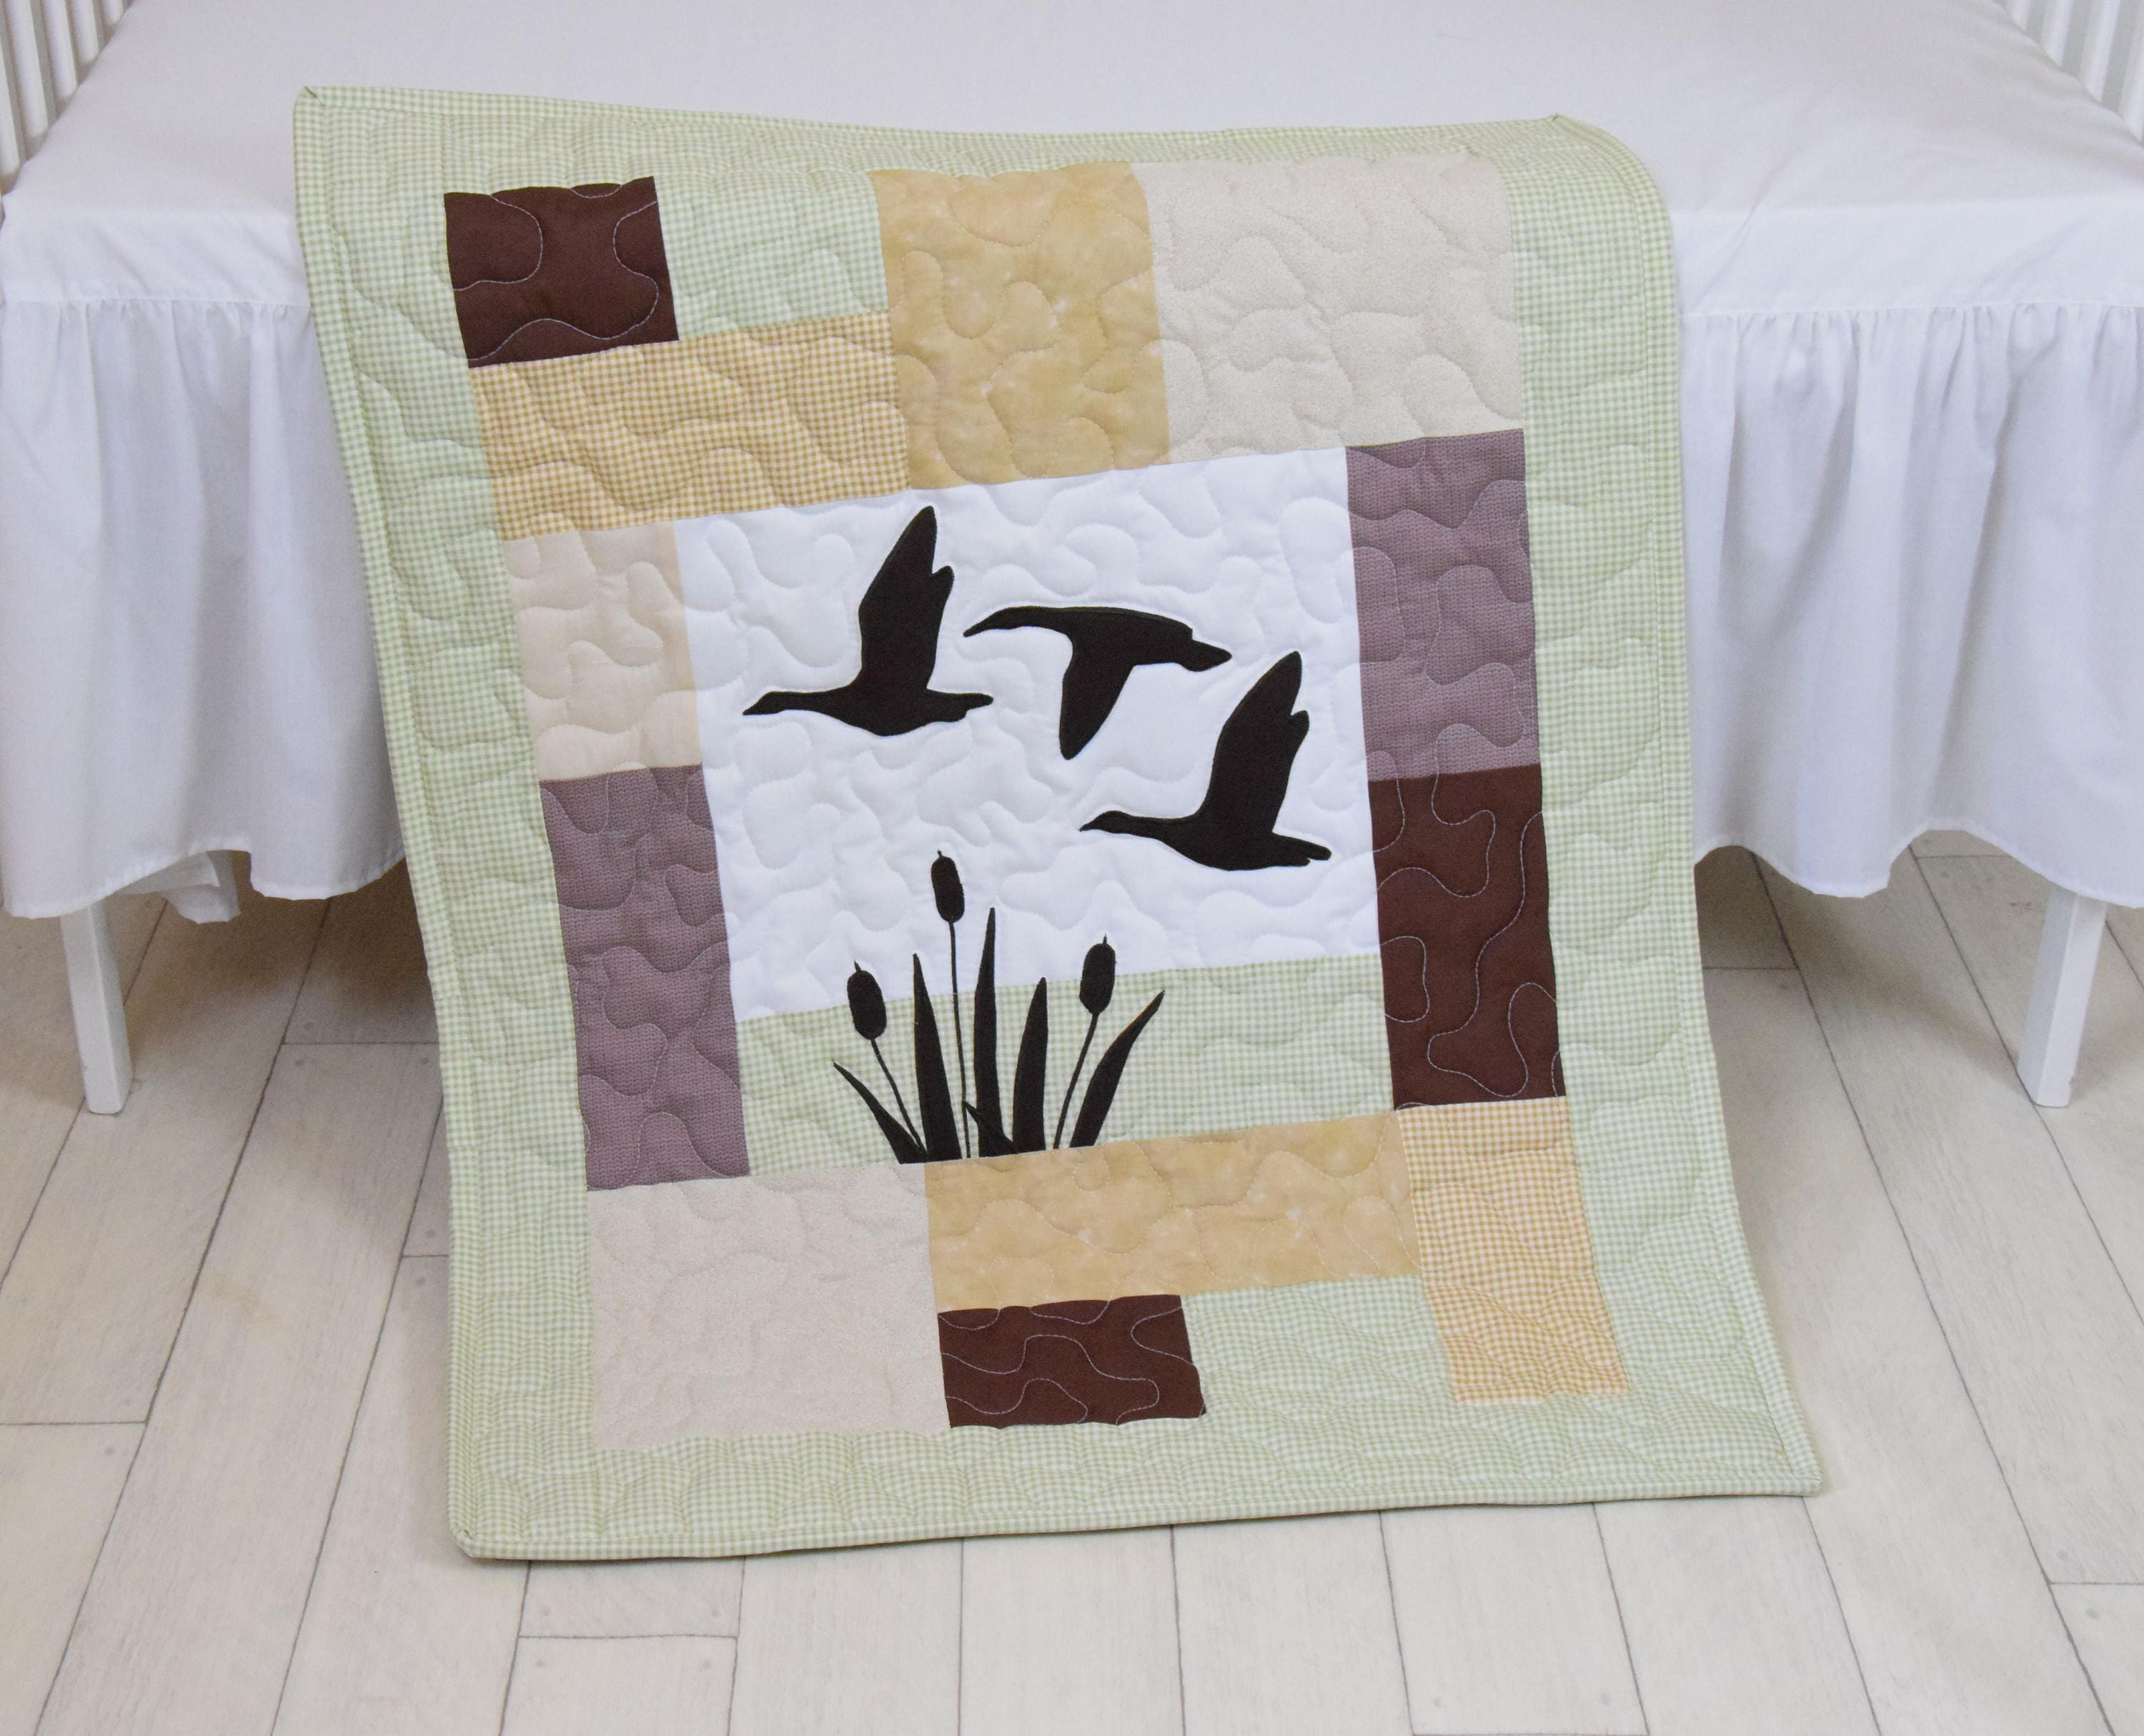 Duck Baby Quilt Hunting Theme Crib Bedding, Hunter Nursery, Woodland Crib  Bedding For Baby Boy, Forest Blanket, Gray, Green, Beige, Brown